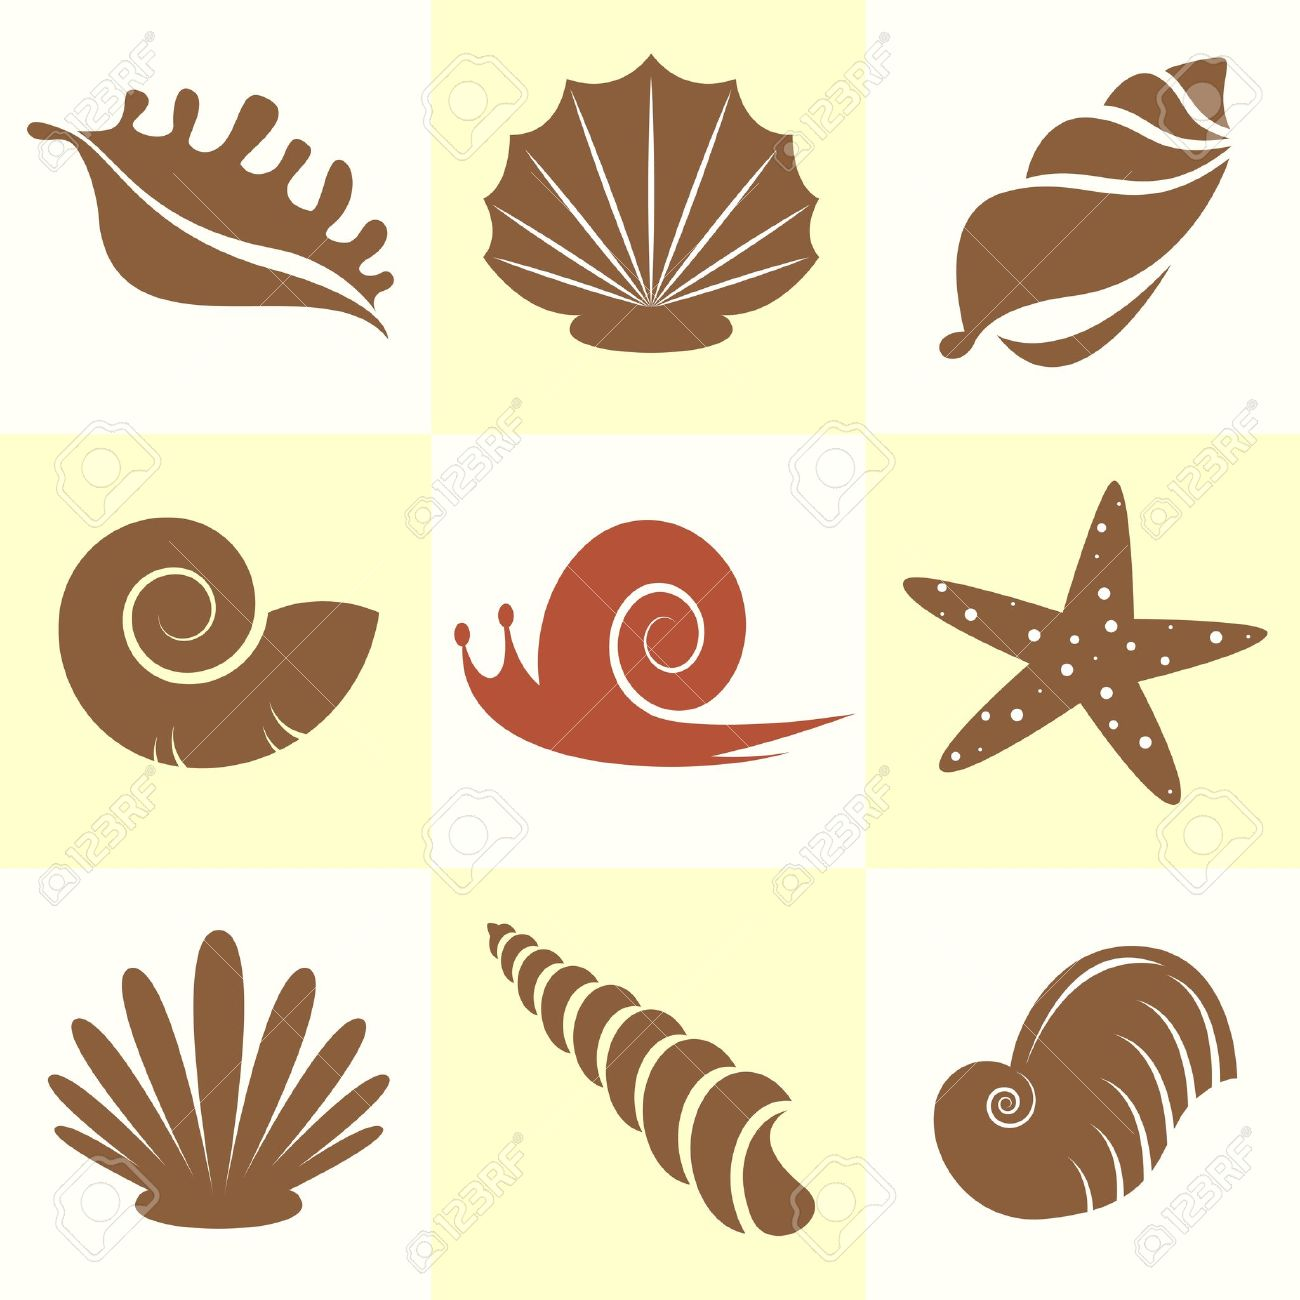 vector collection of sea shells and snail royalty free cliparts